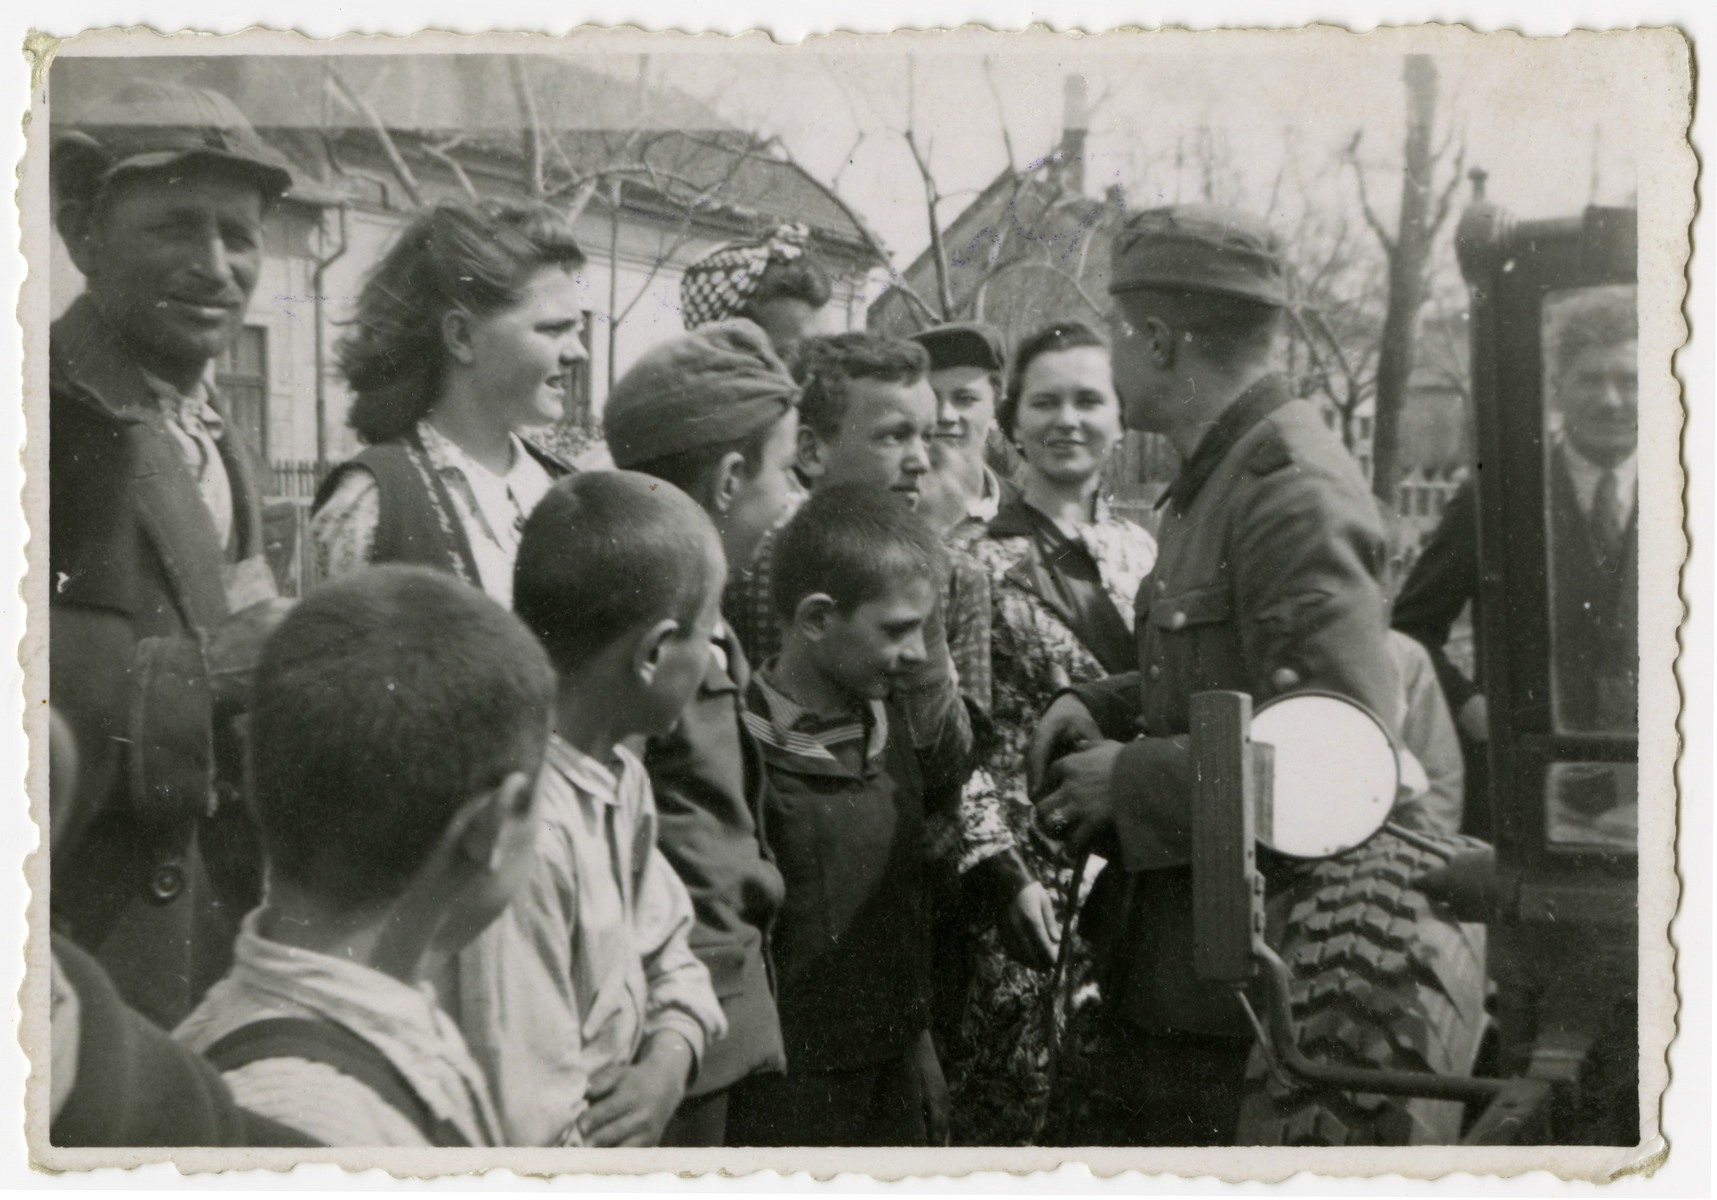 A German soldier meets young Hungarians in Szeged.